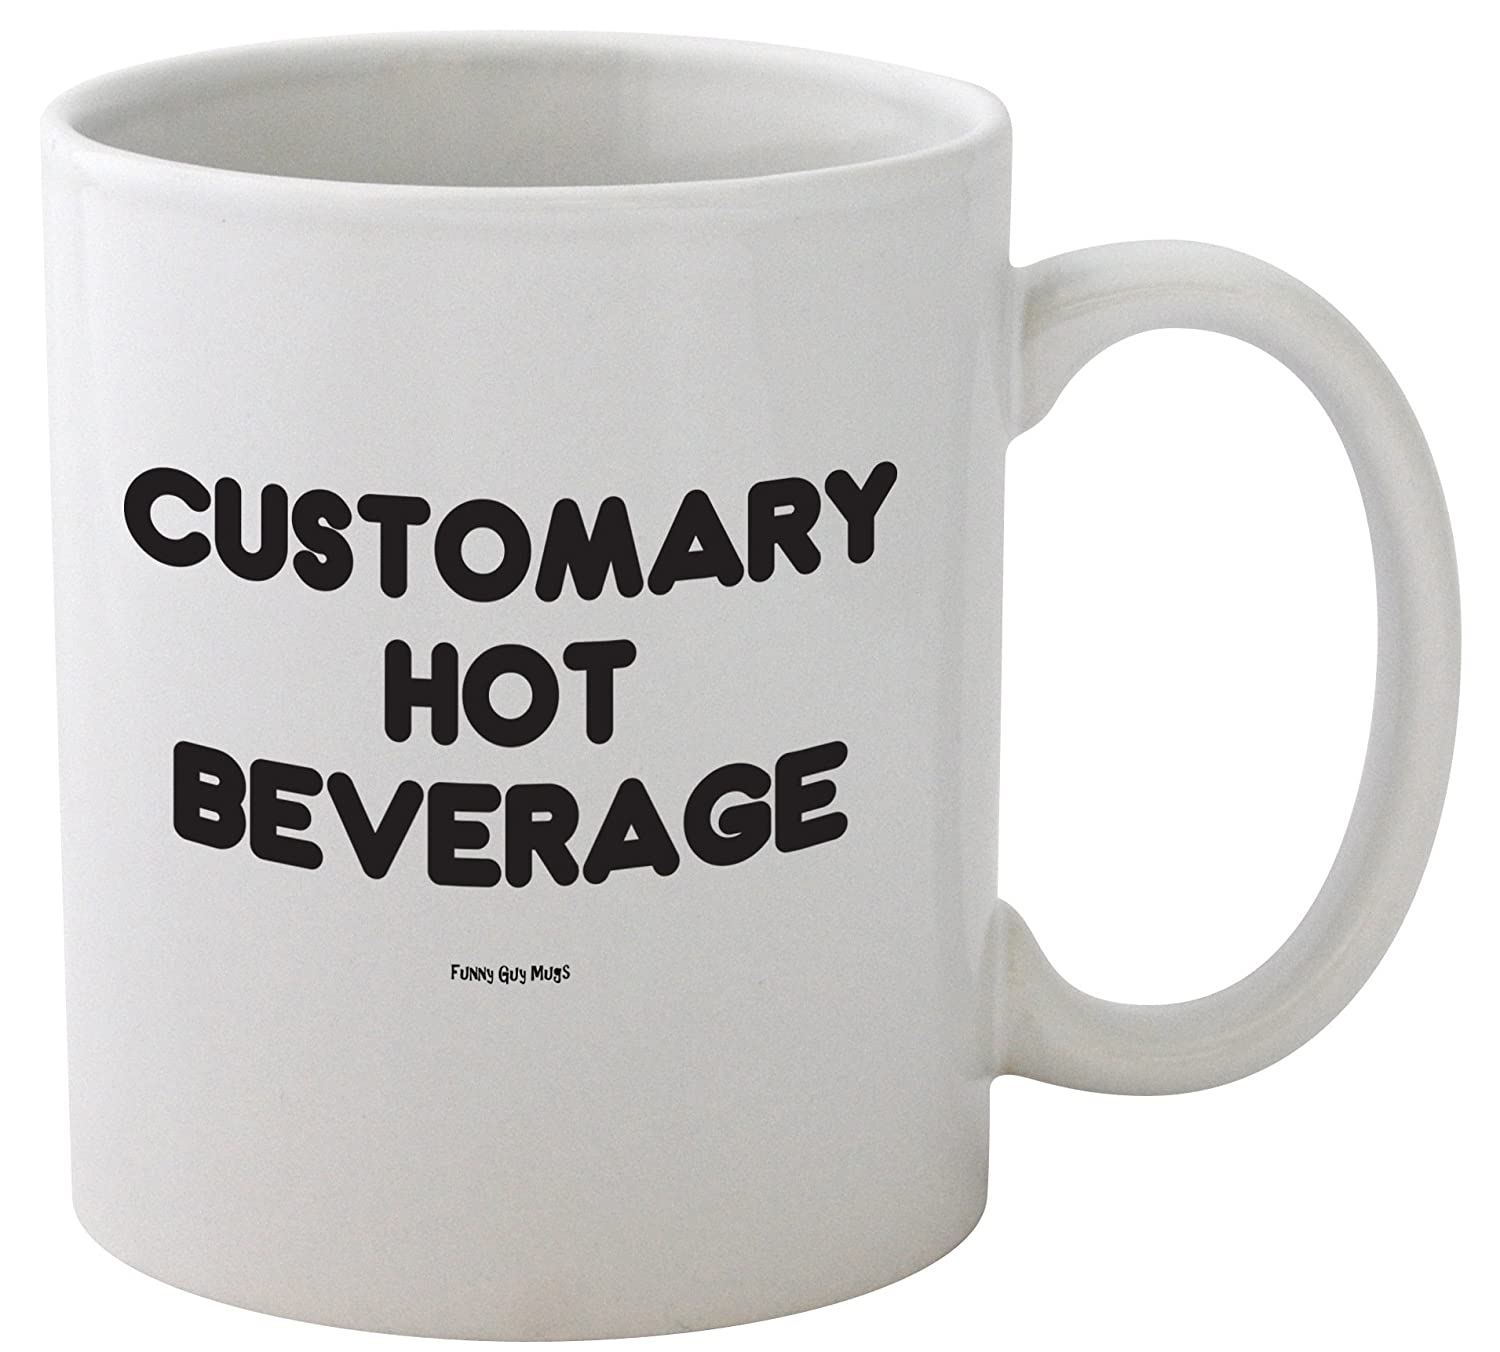 Amazon Funny Guy Mugs Customary Hot Beverage Ceramic Coffee